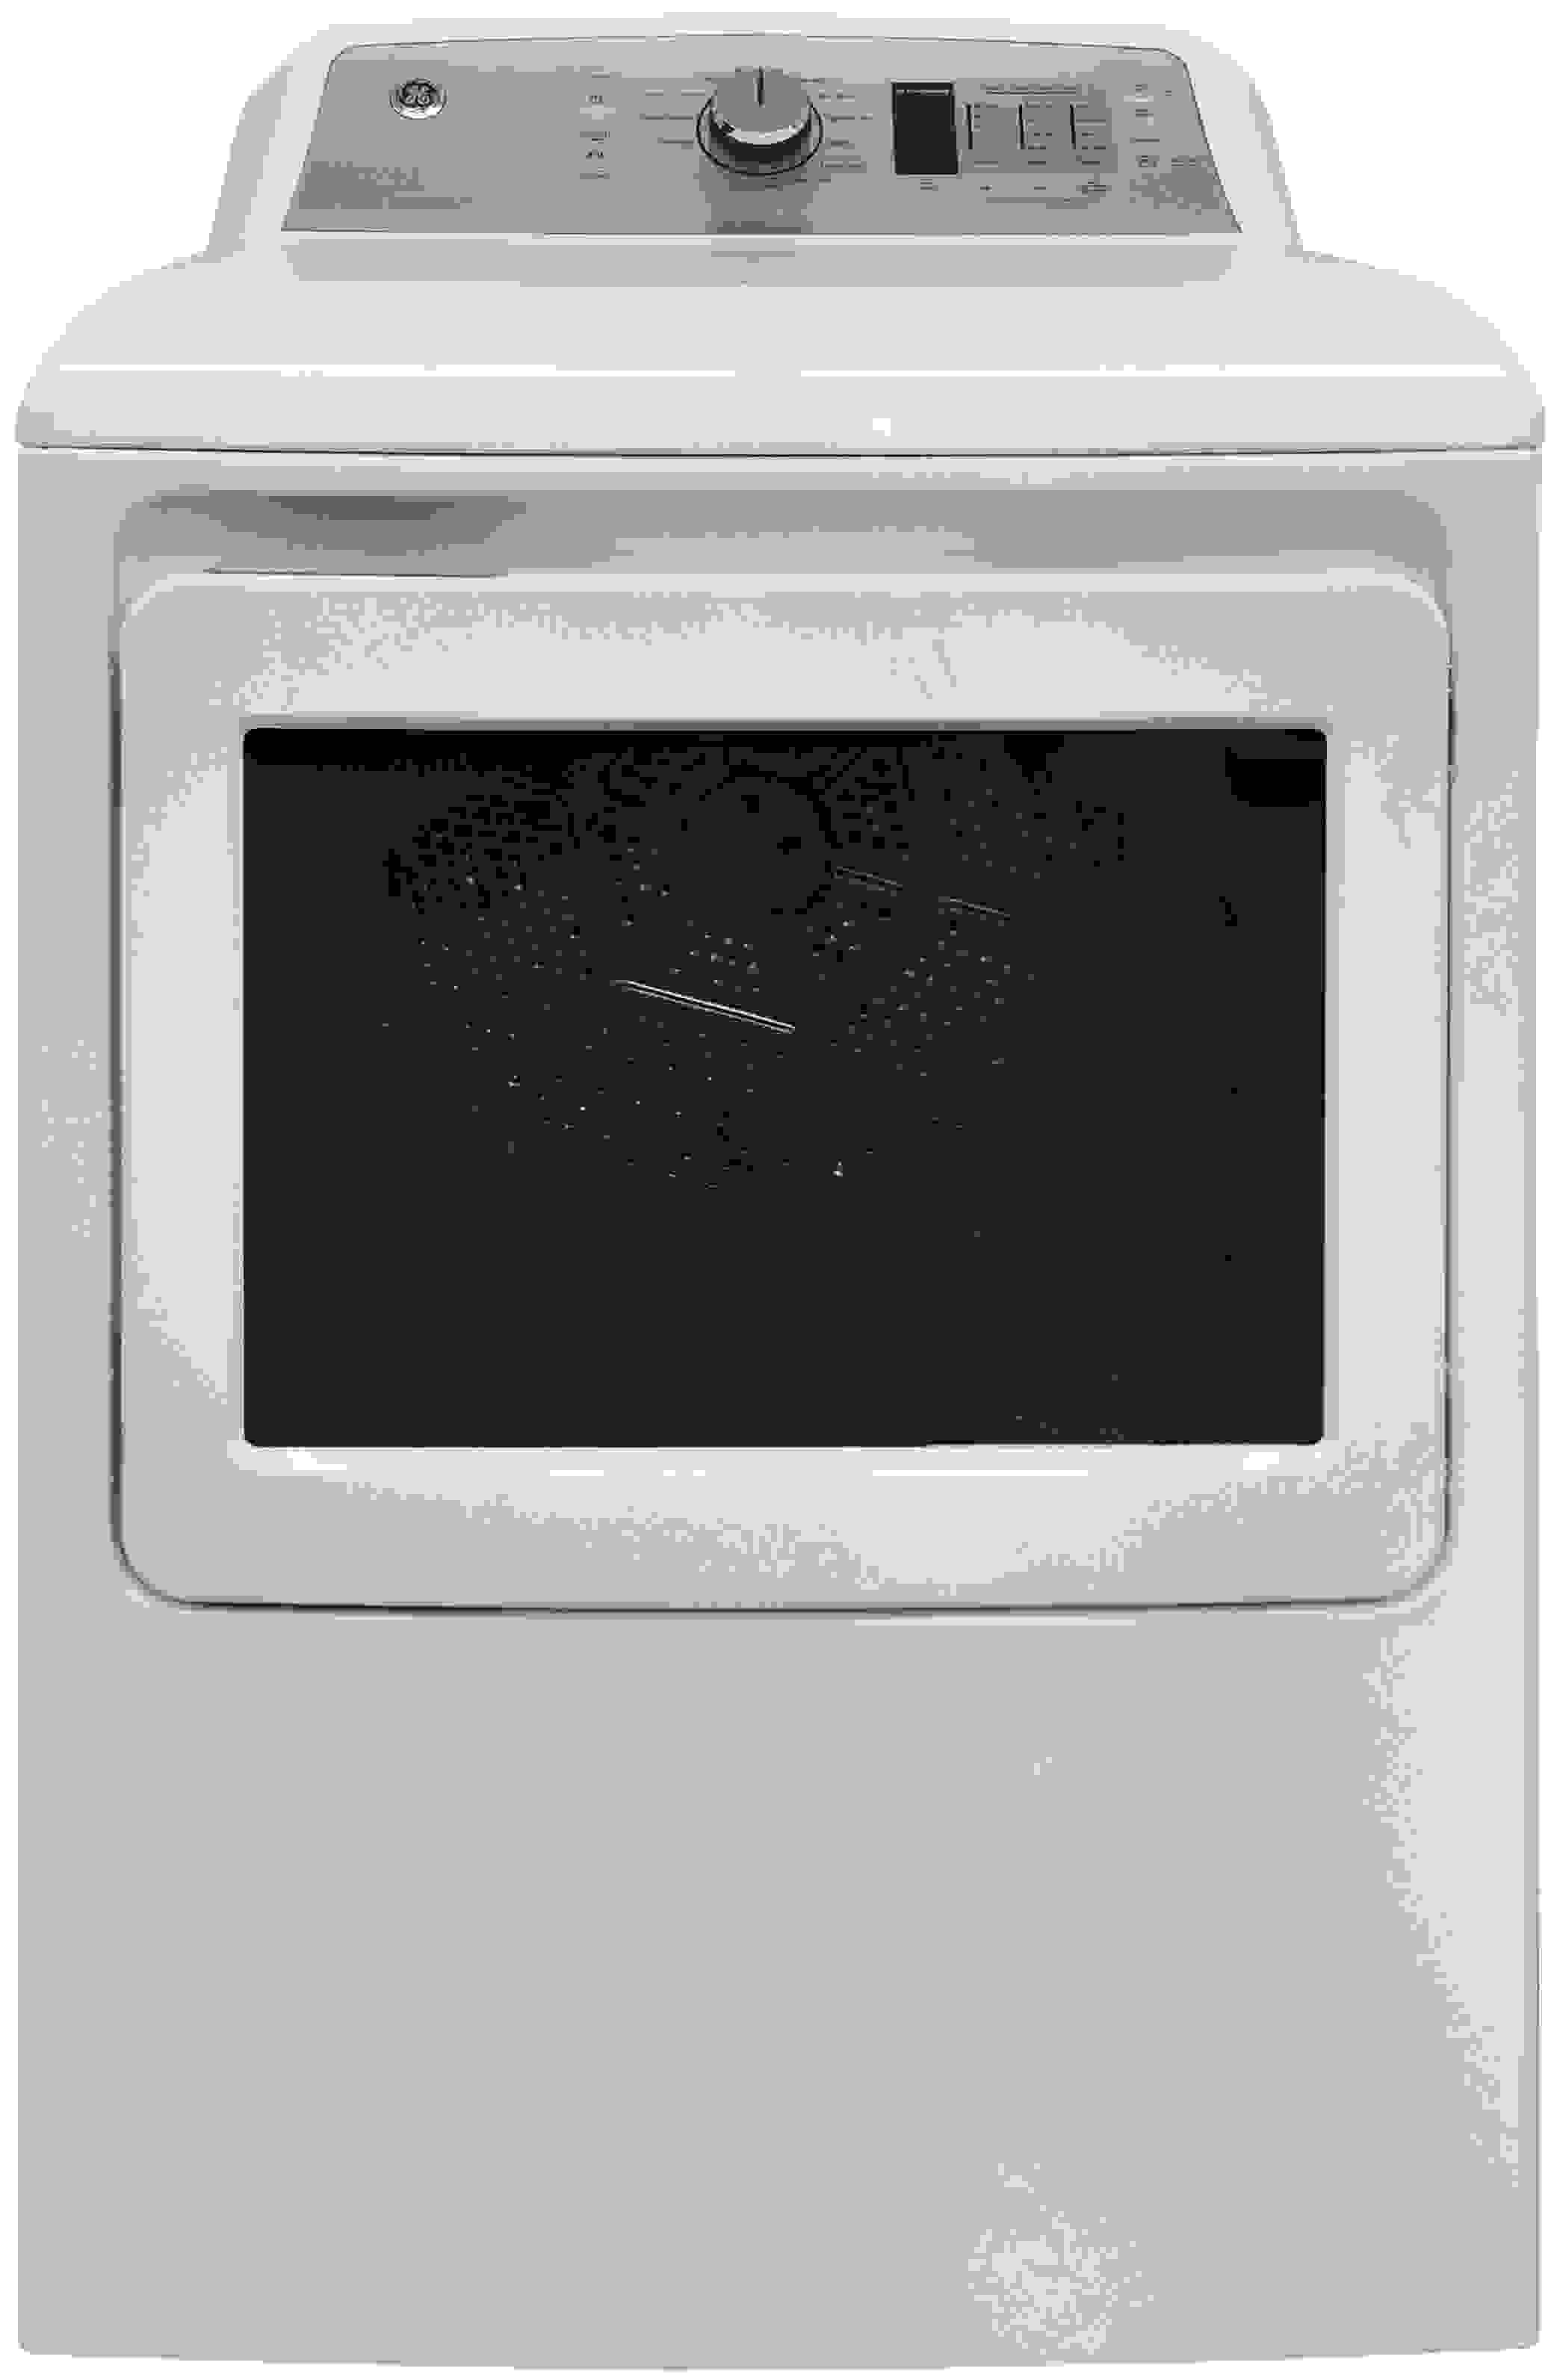 The 7.4-cu.-ft. GE GTD65EBSJWS combines basic design with a handful of higher end design elements.